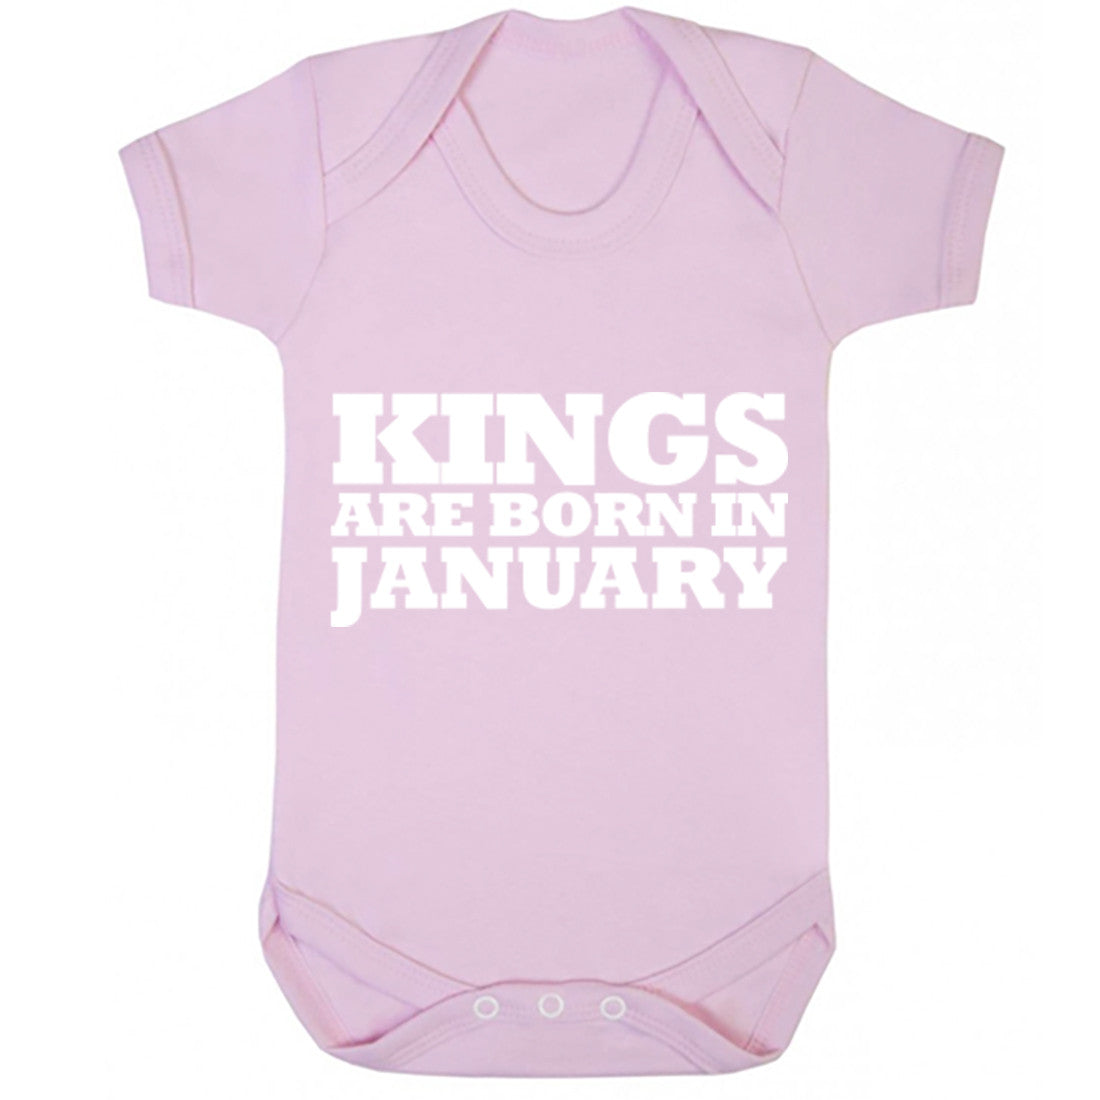 Kings Are Born In January Baby Vest K1684 - Illustrated Identity Ltd.